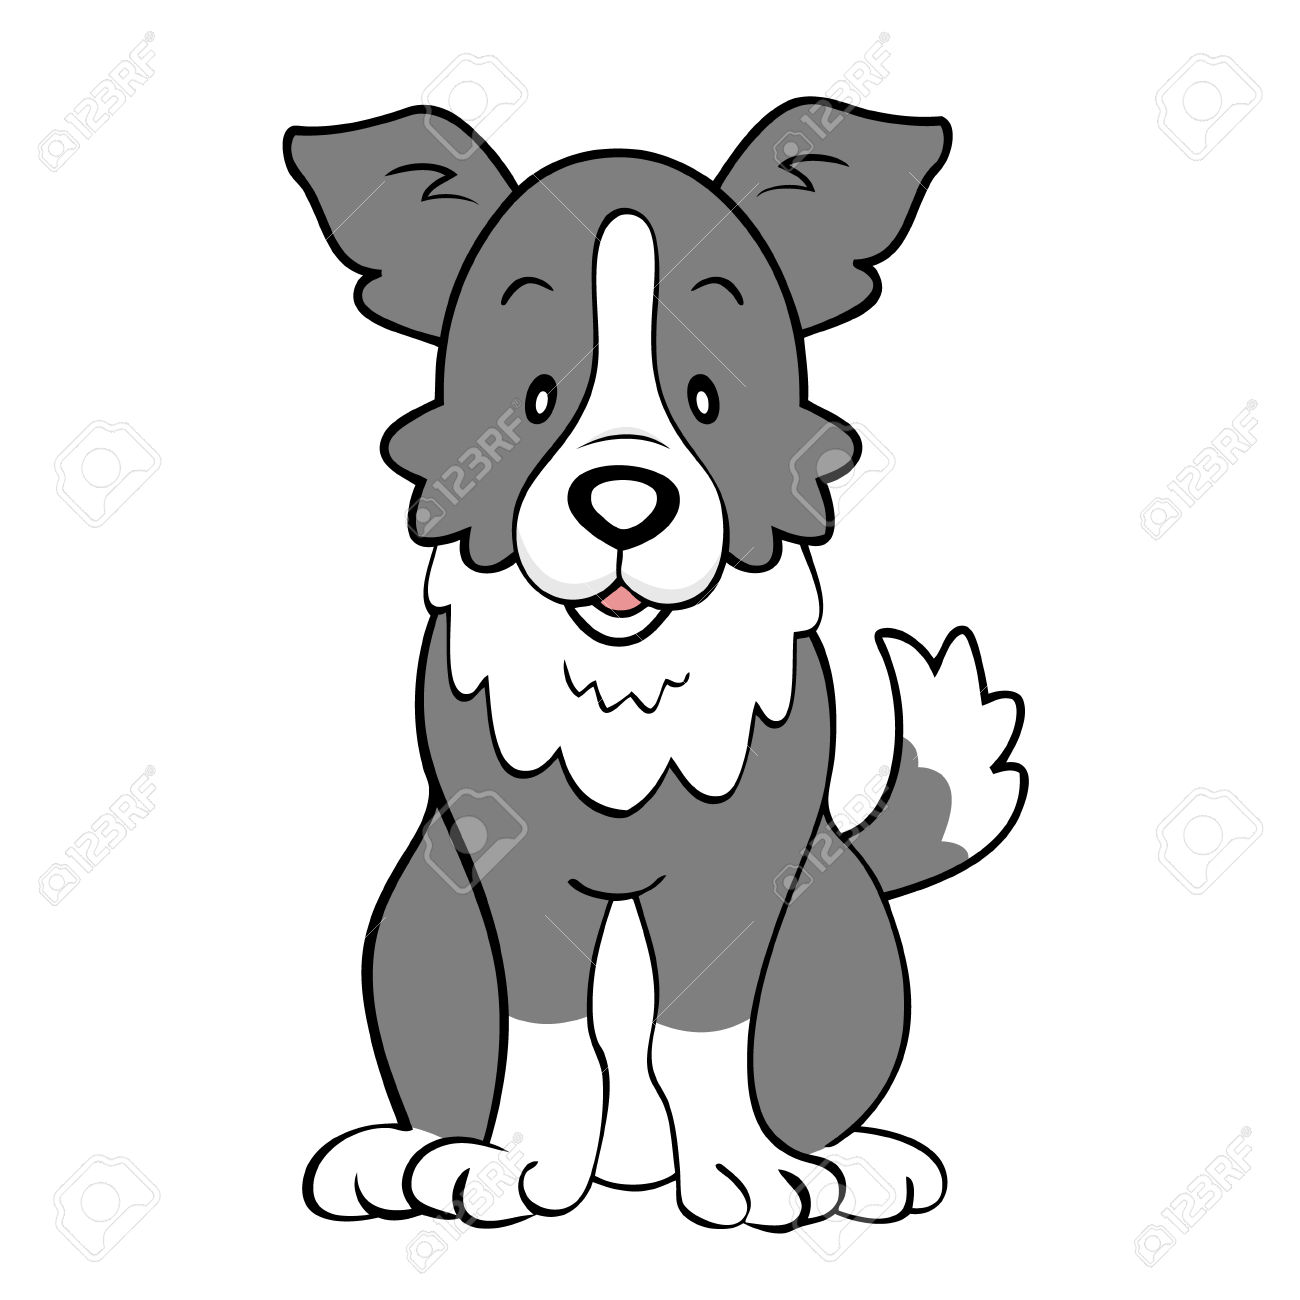 Border Collie clipart #17, Download drawings